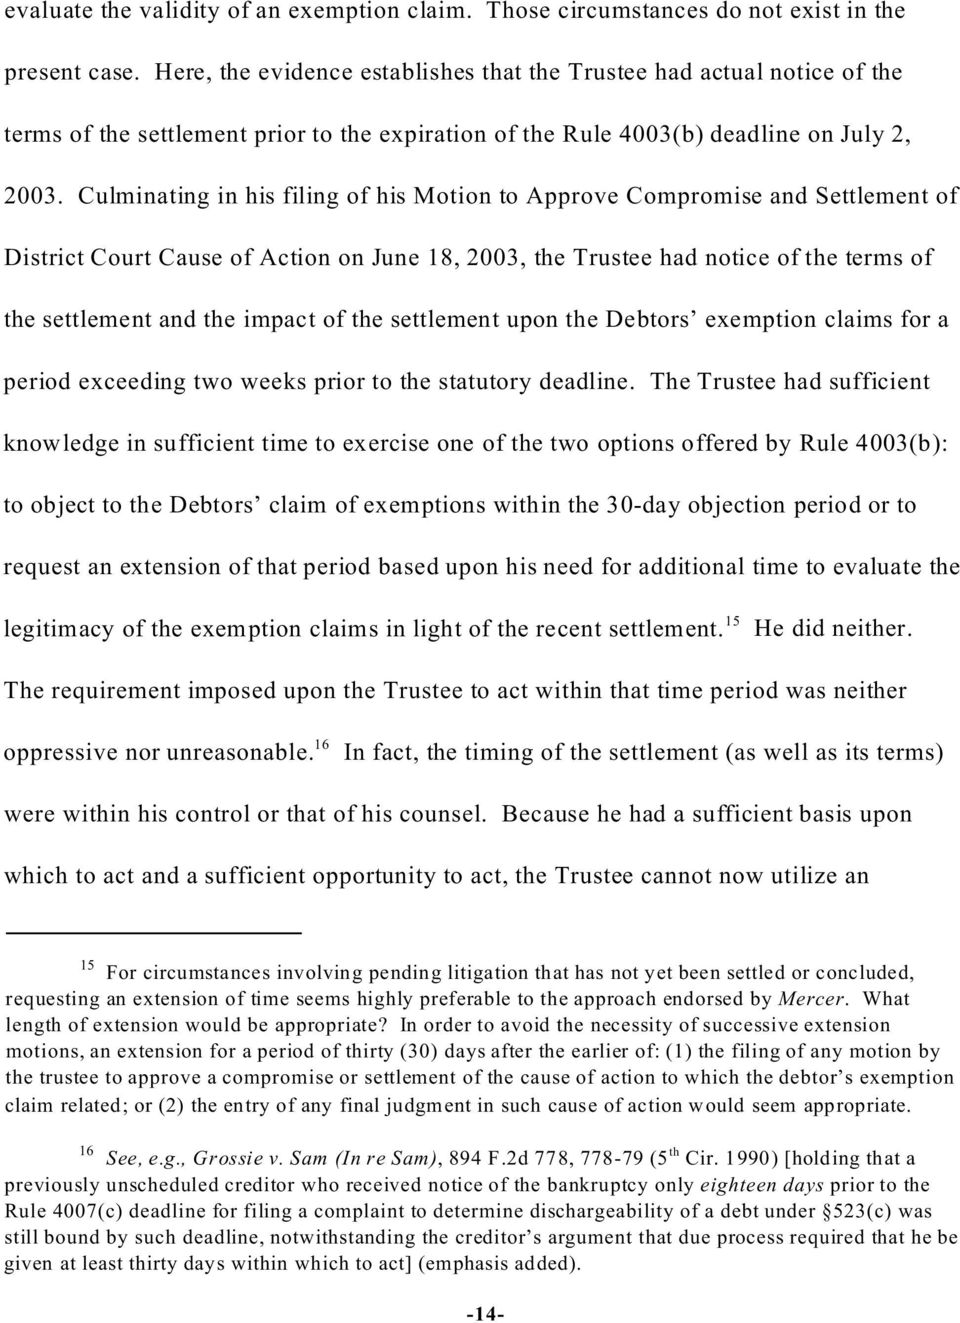 Culminating in his filing of his Motion to Approve Compromise and Settlement of District Court Cause of Action on June 18, 2003, the Trustee had notice of the terms of the settlement and the impact